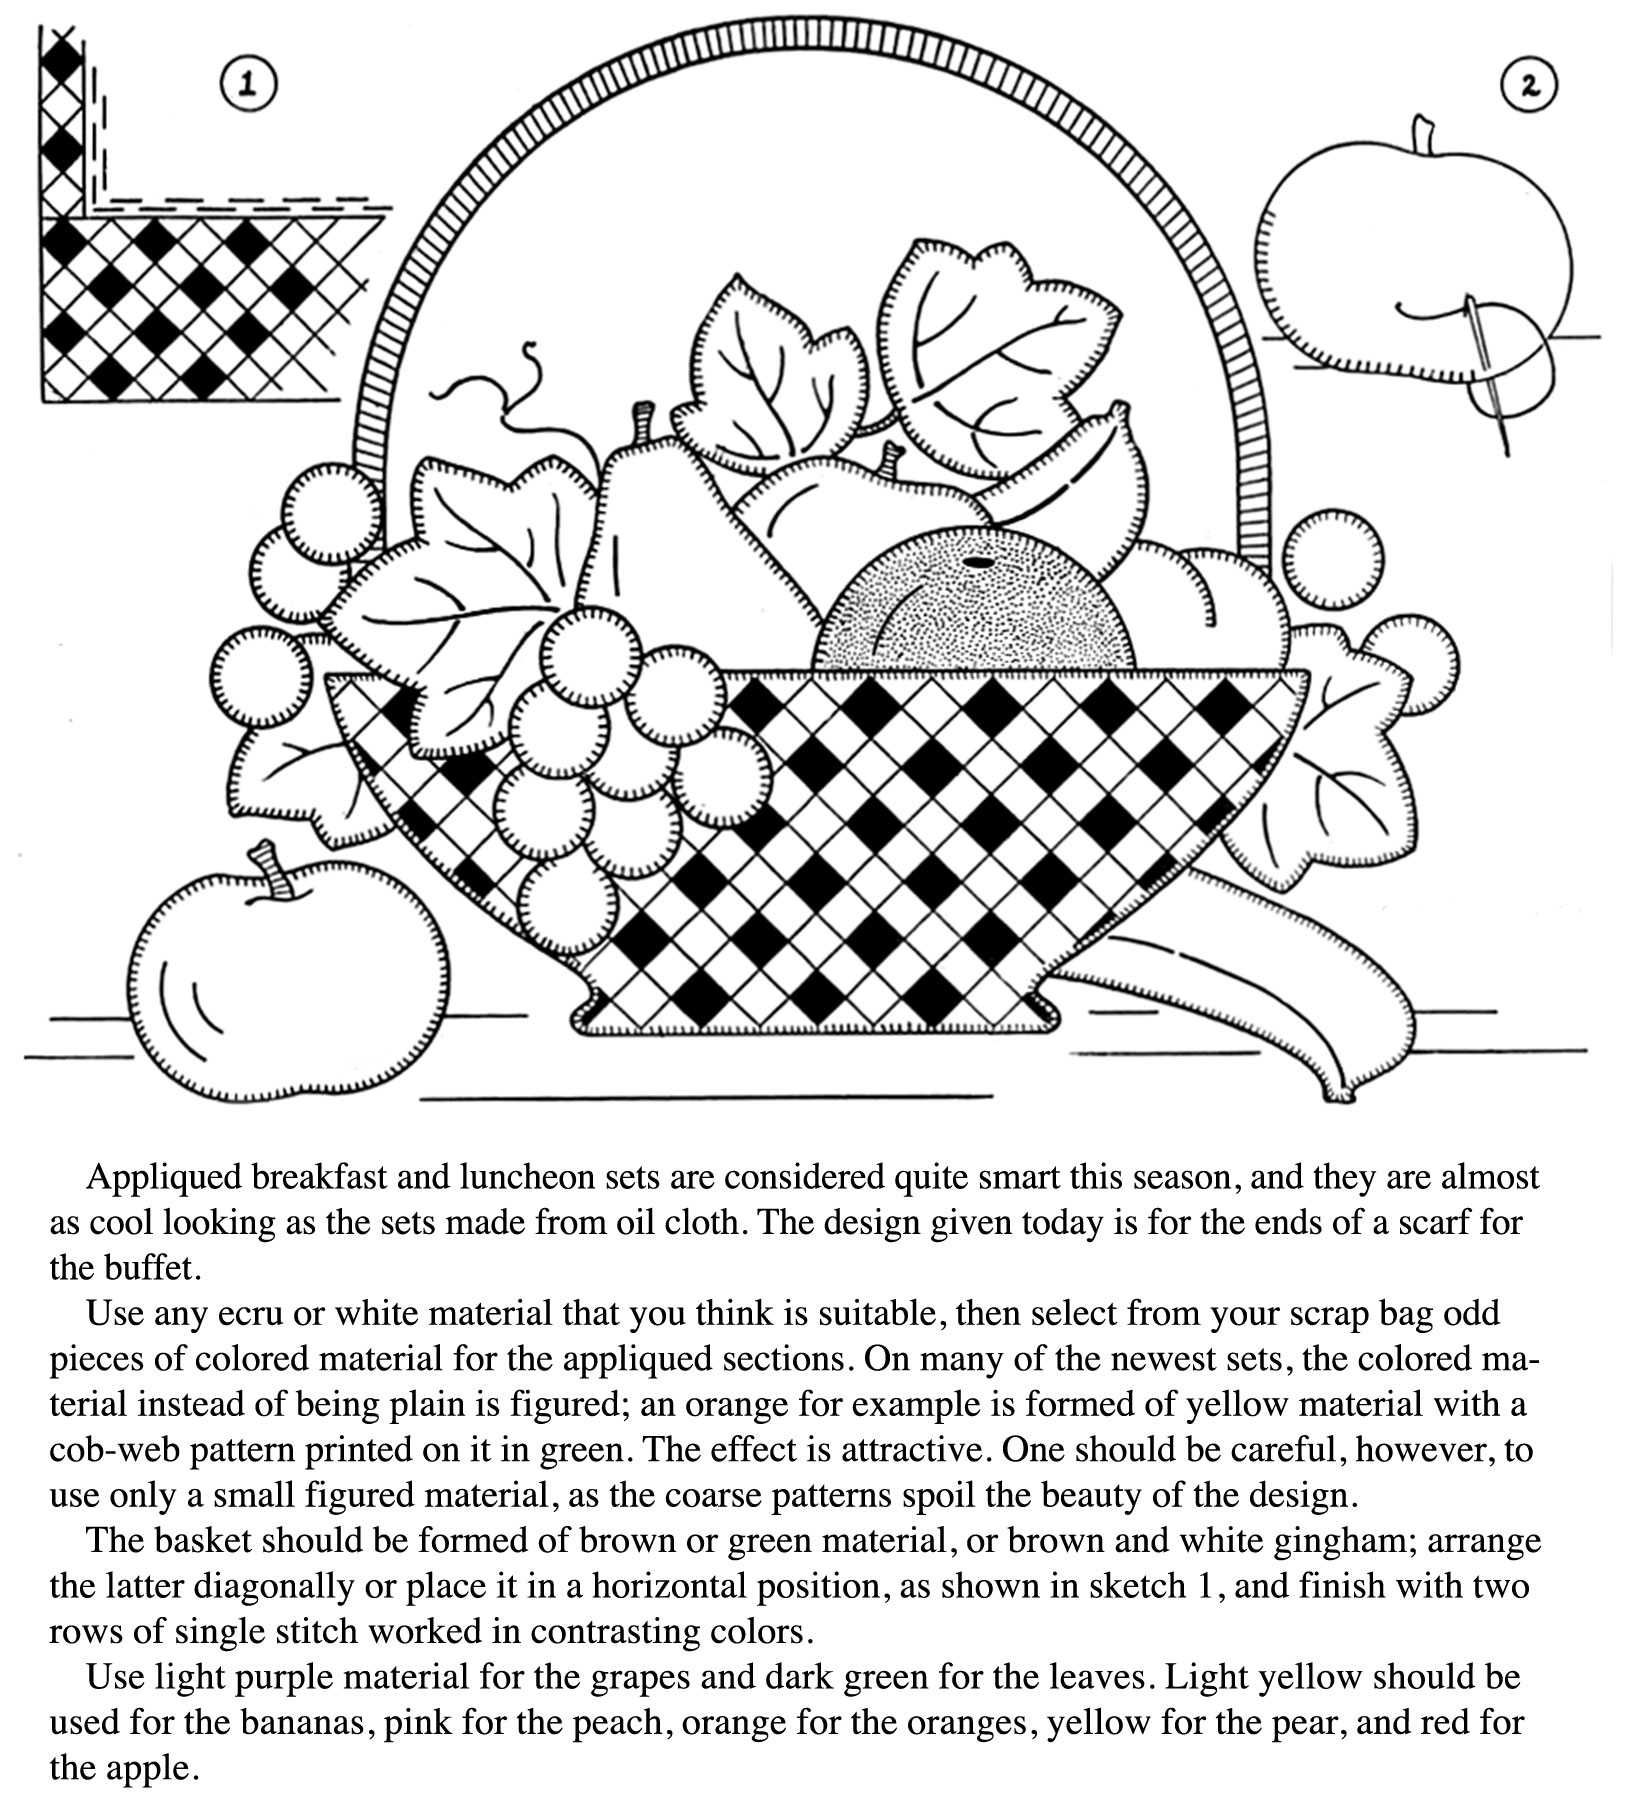 http://qisforquilter.com/wp-content/uploads/Fruit-Basket-Applique-2.jpg